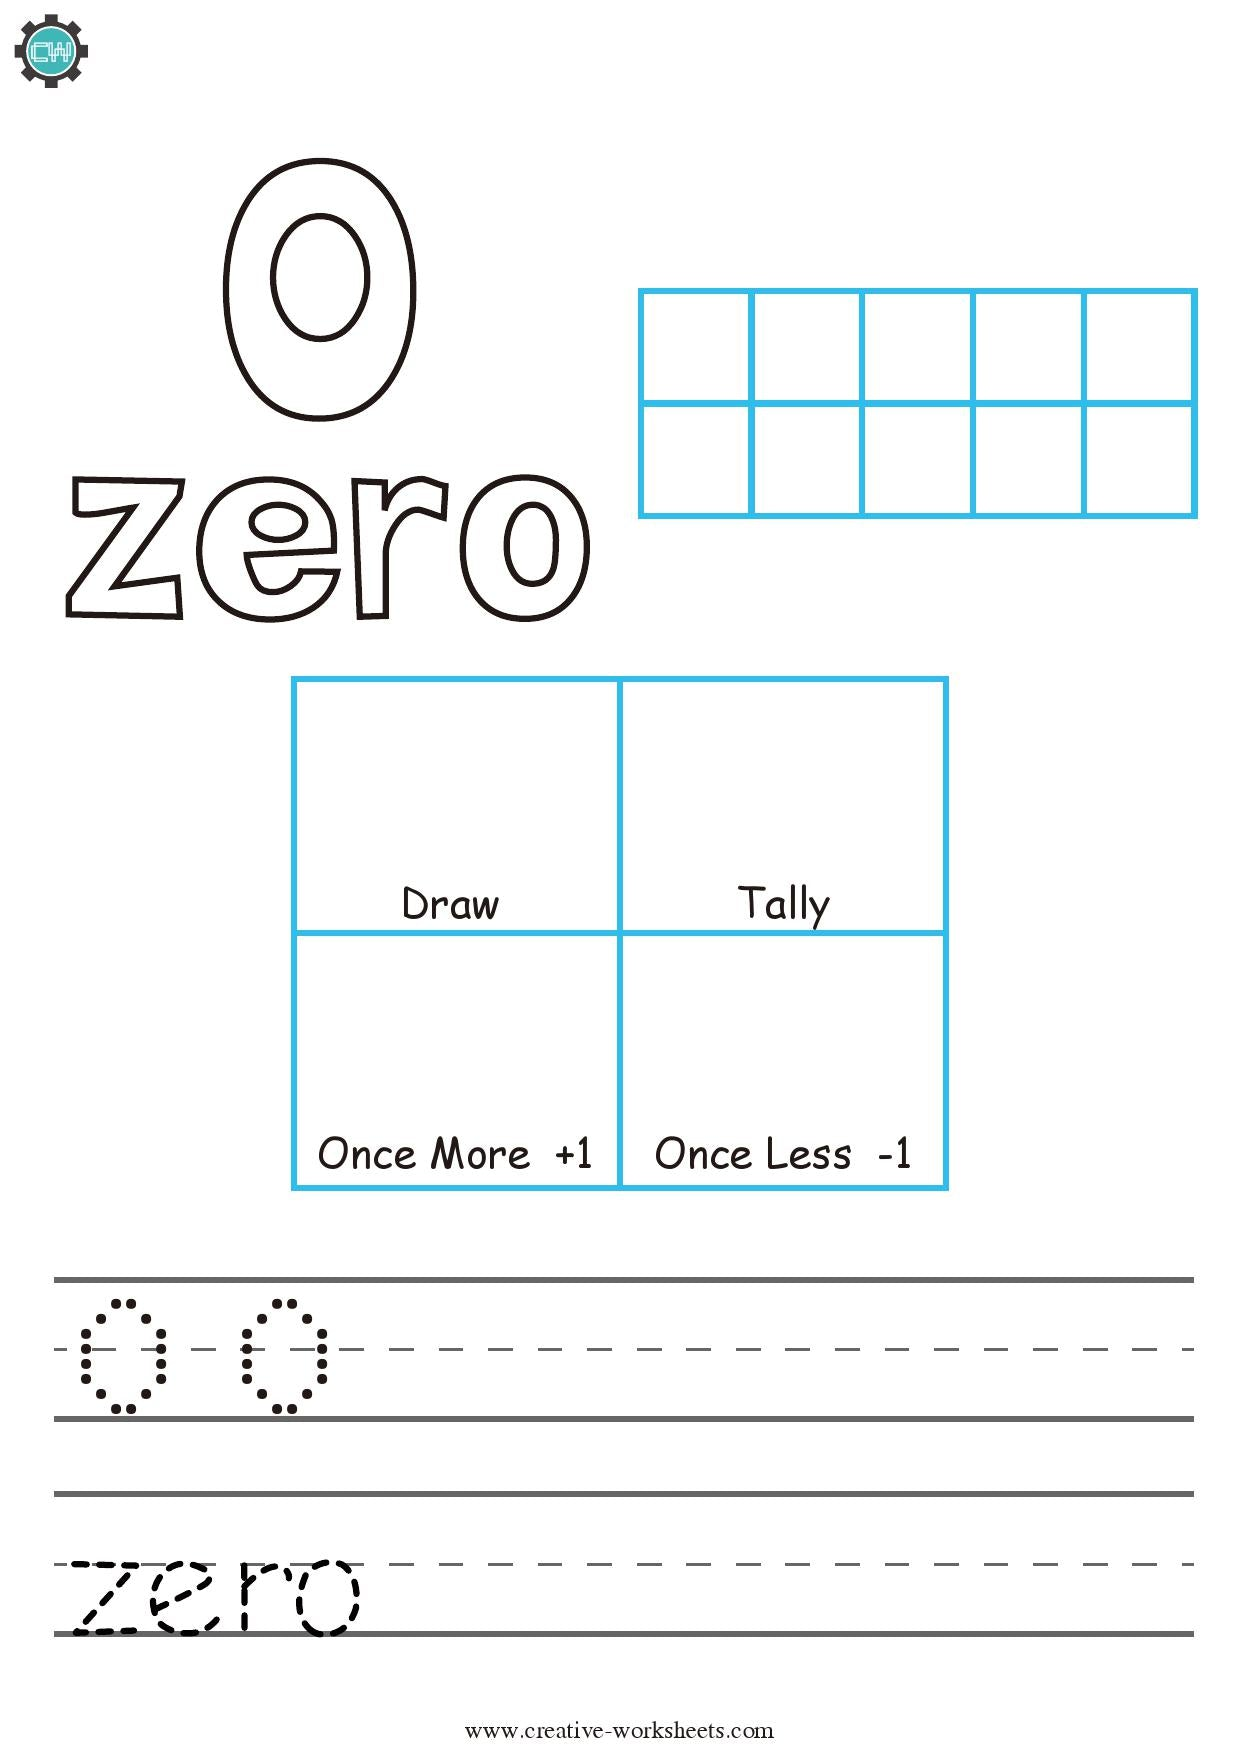 Counting 0 - 100 - CreativeWorksheets